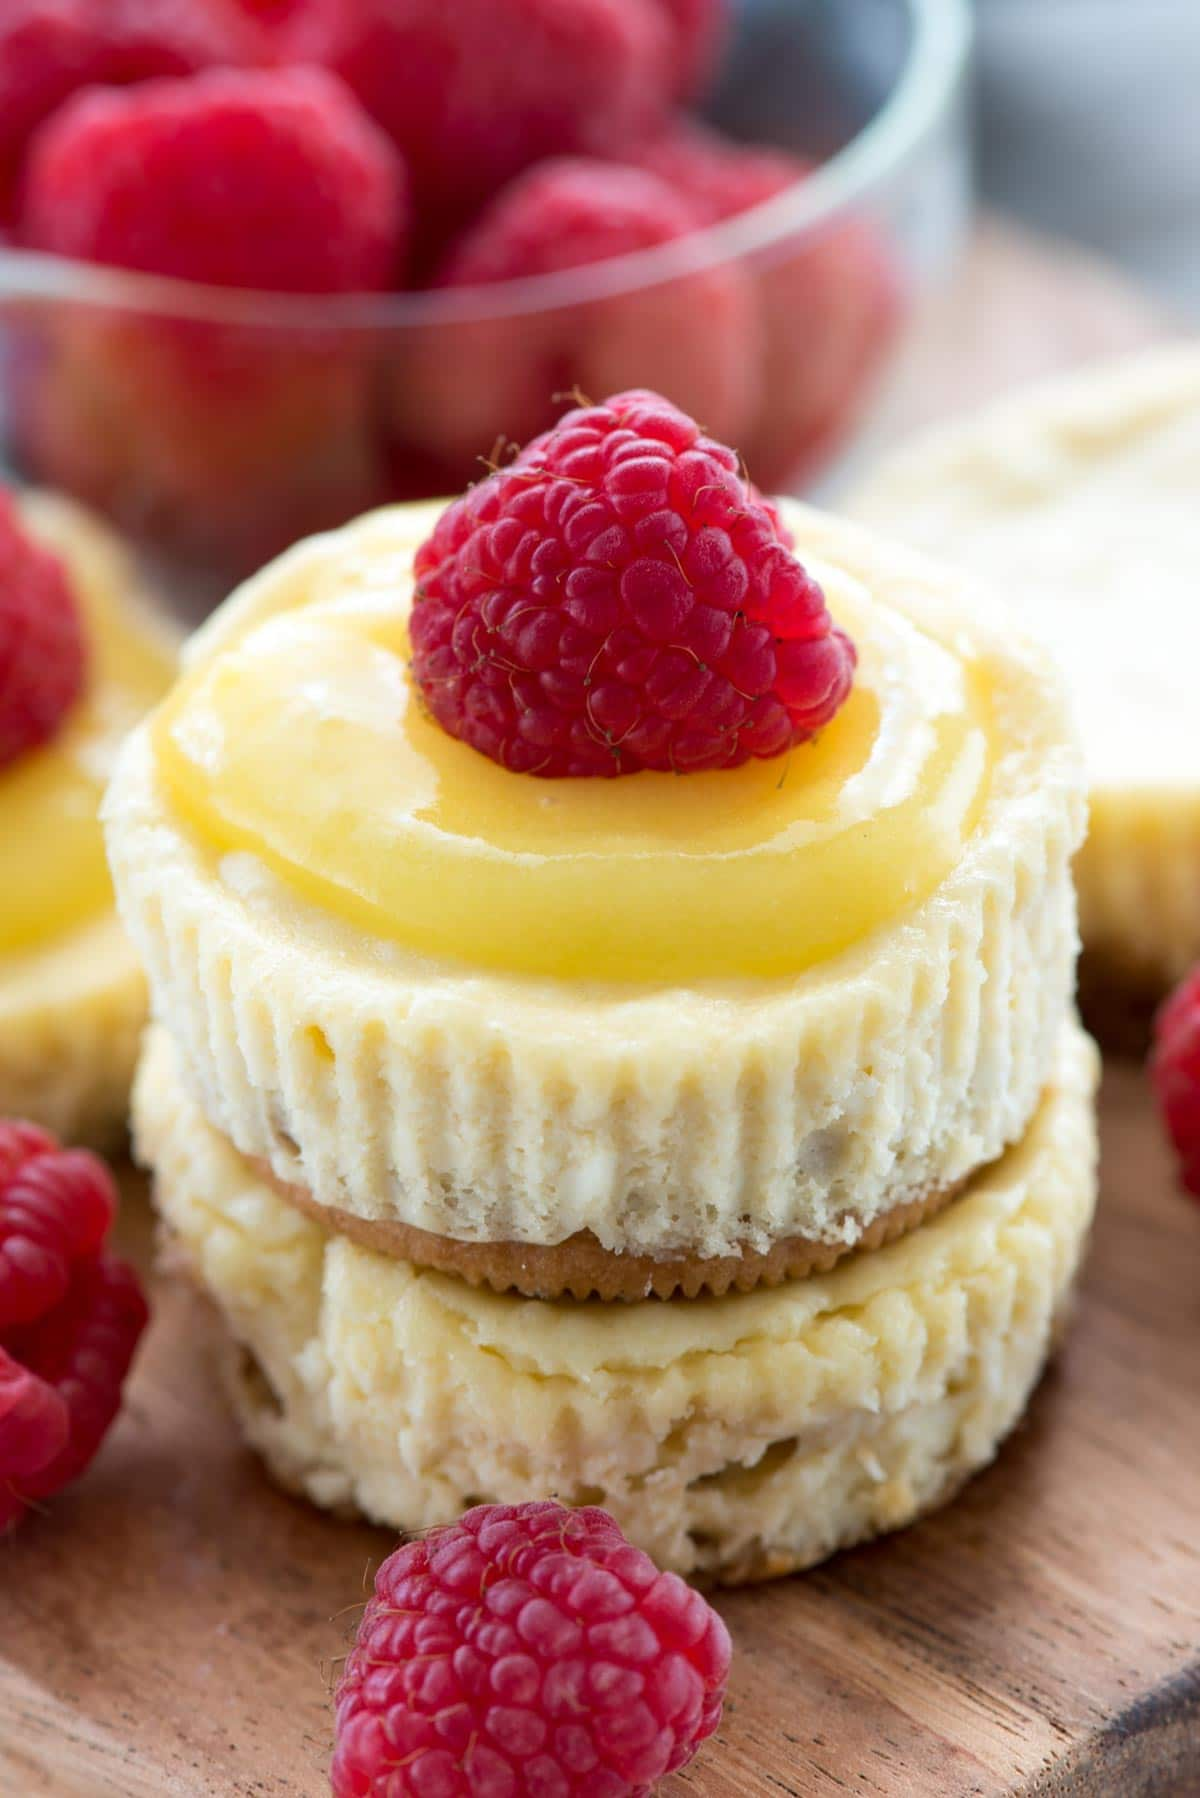 Easy Mini Lemon Cheesecakes - this easy cheesecake recipe makes 12 mini lemon cheesecakes with a Golden Oreo crust and lemon curd on top!